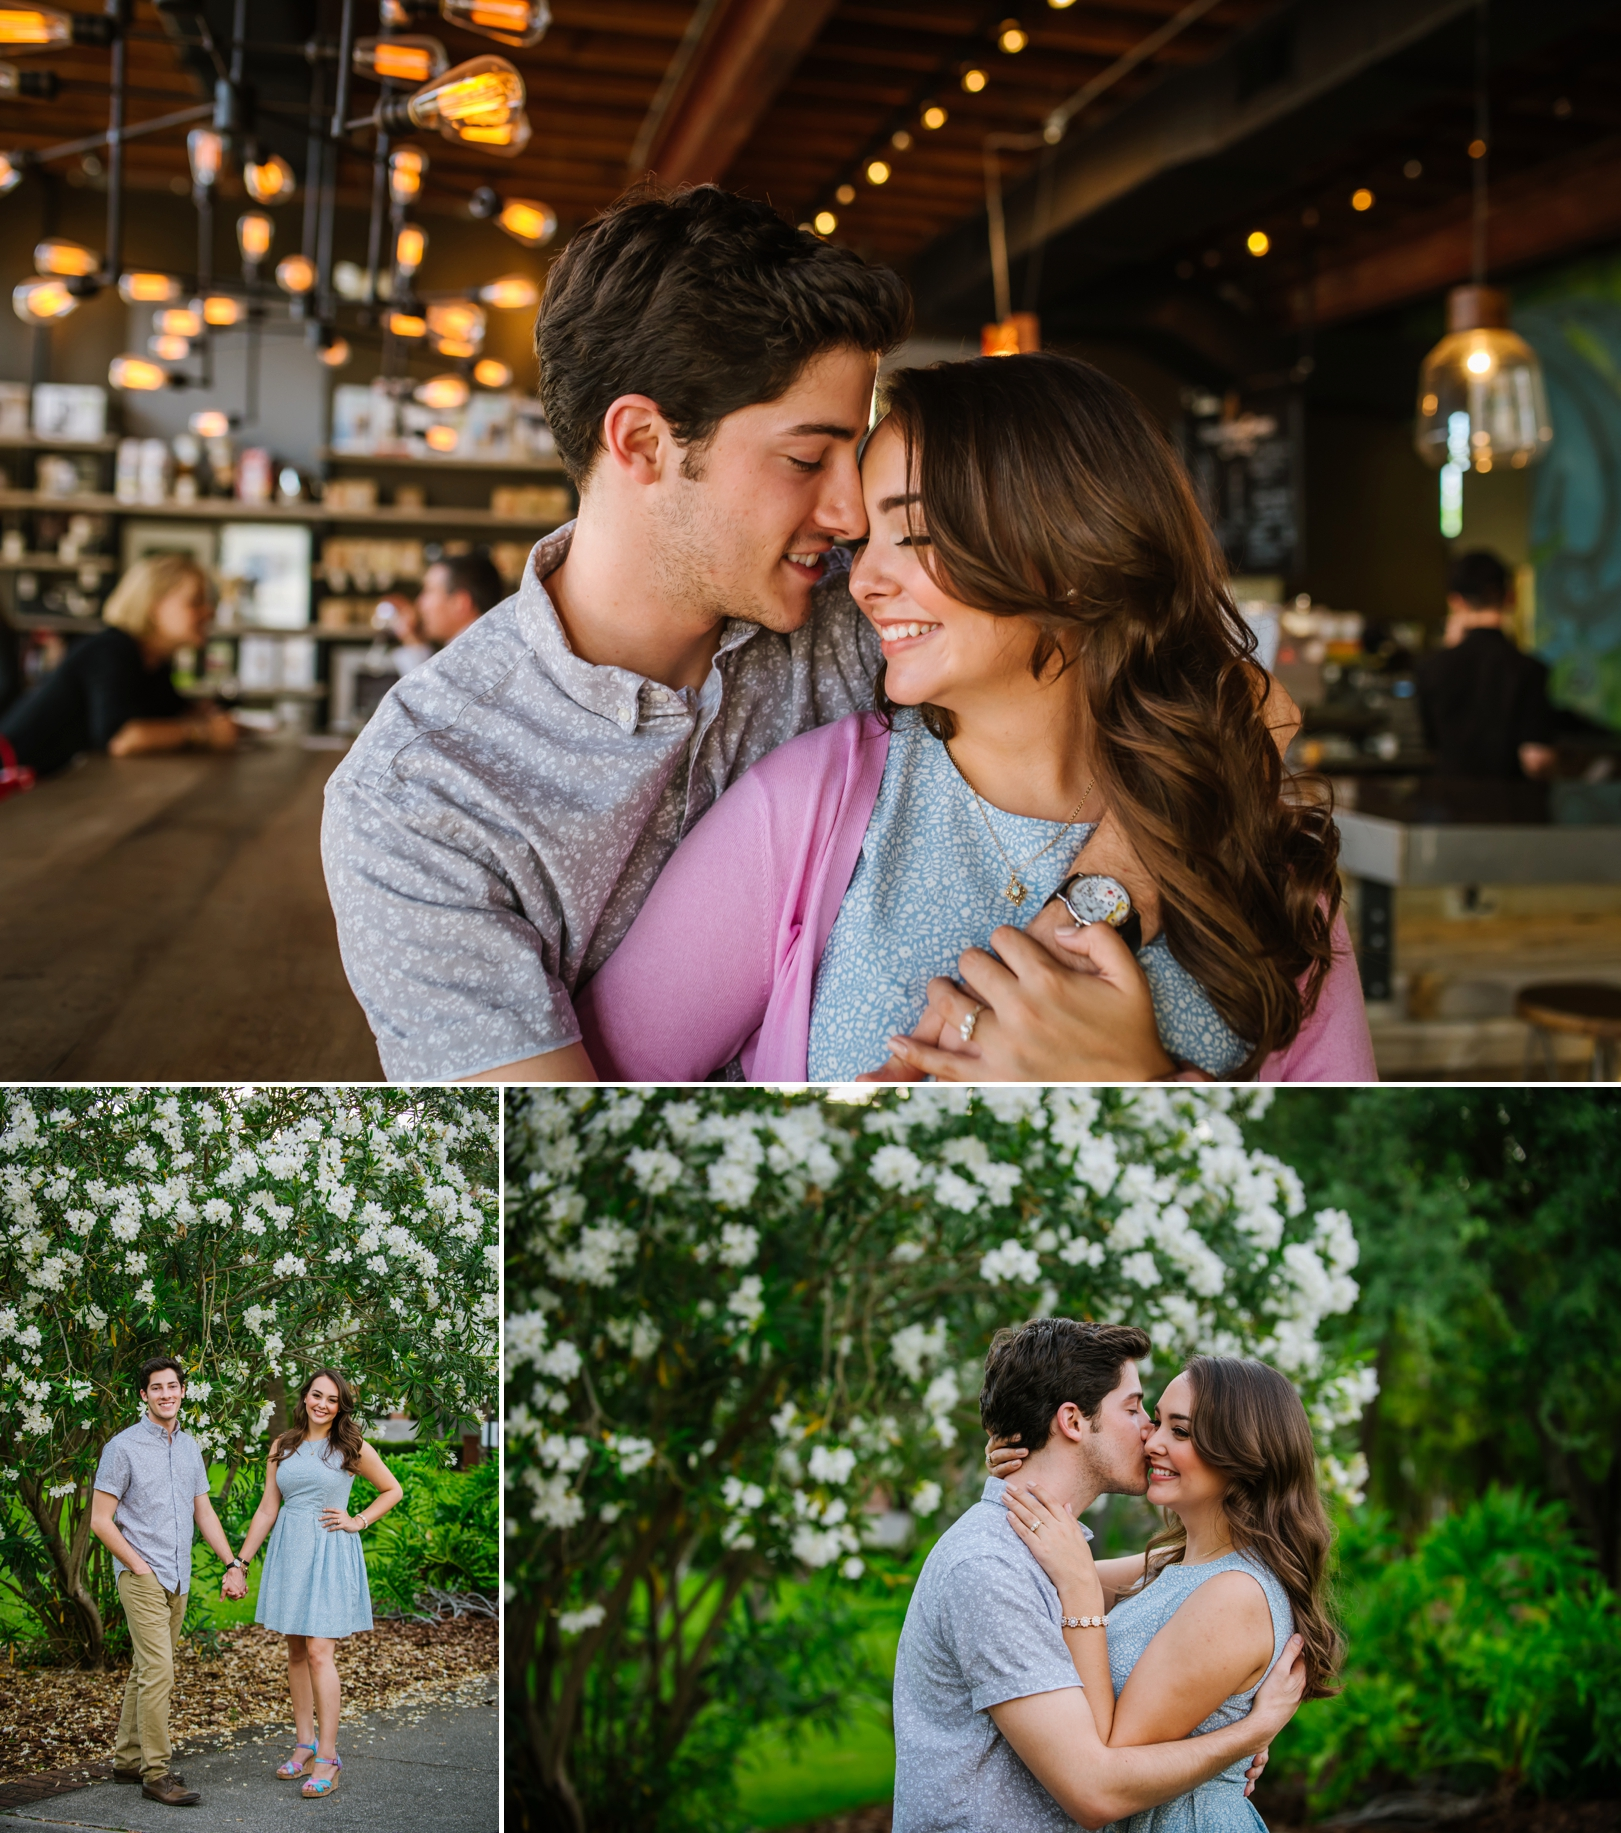 ashlee-hamon-photography-tampa-buddy-brew-coffee-shop-engagement_0005.jpg